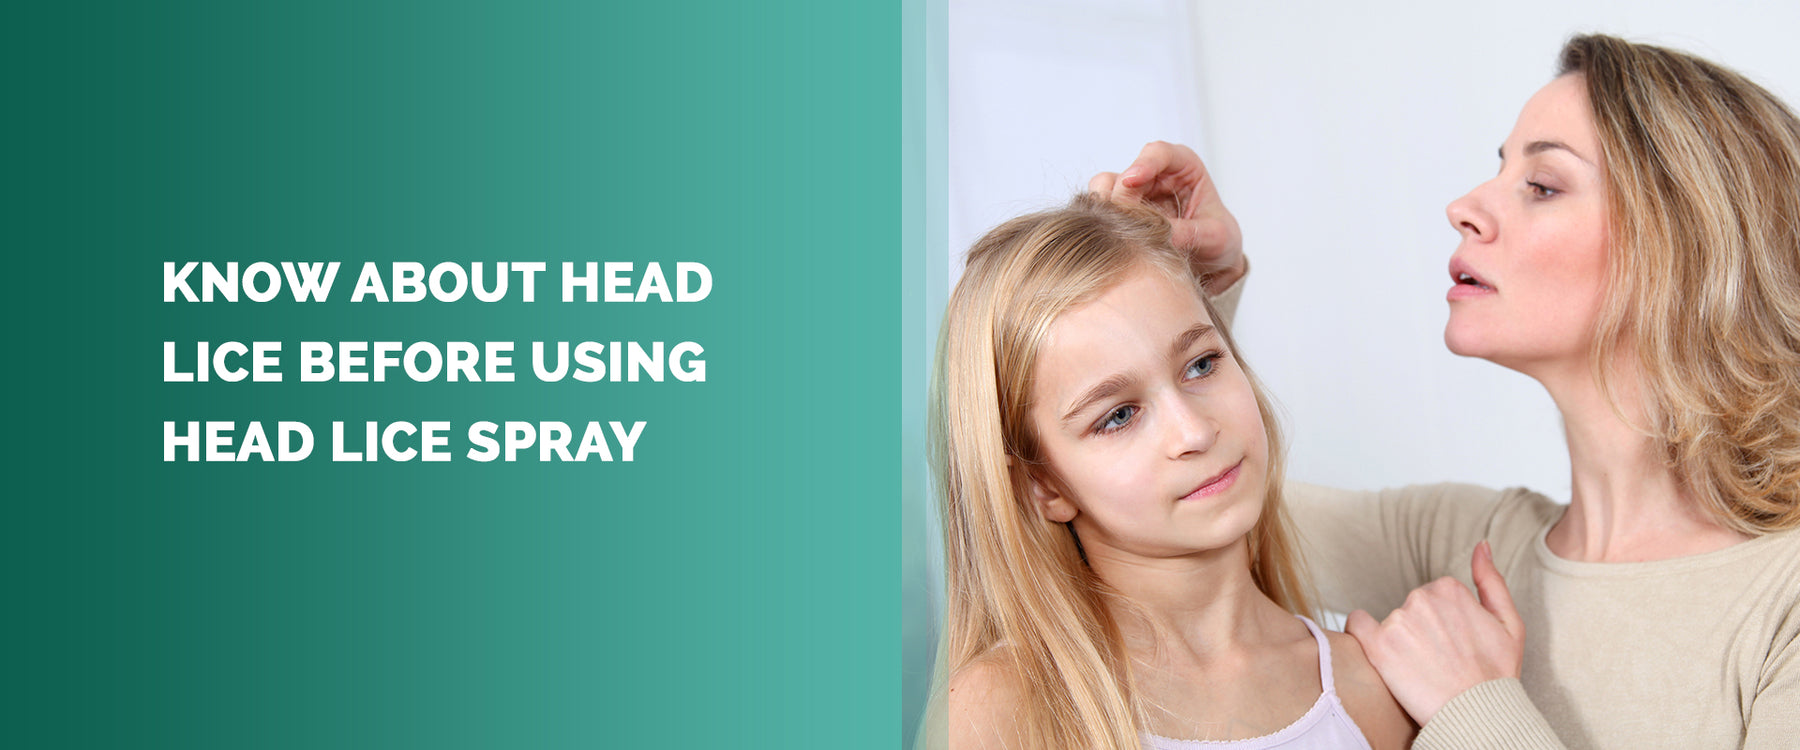 Know About Head Lice Before Using Head Lice Spray